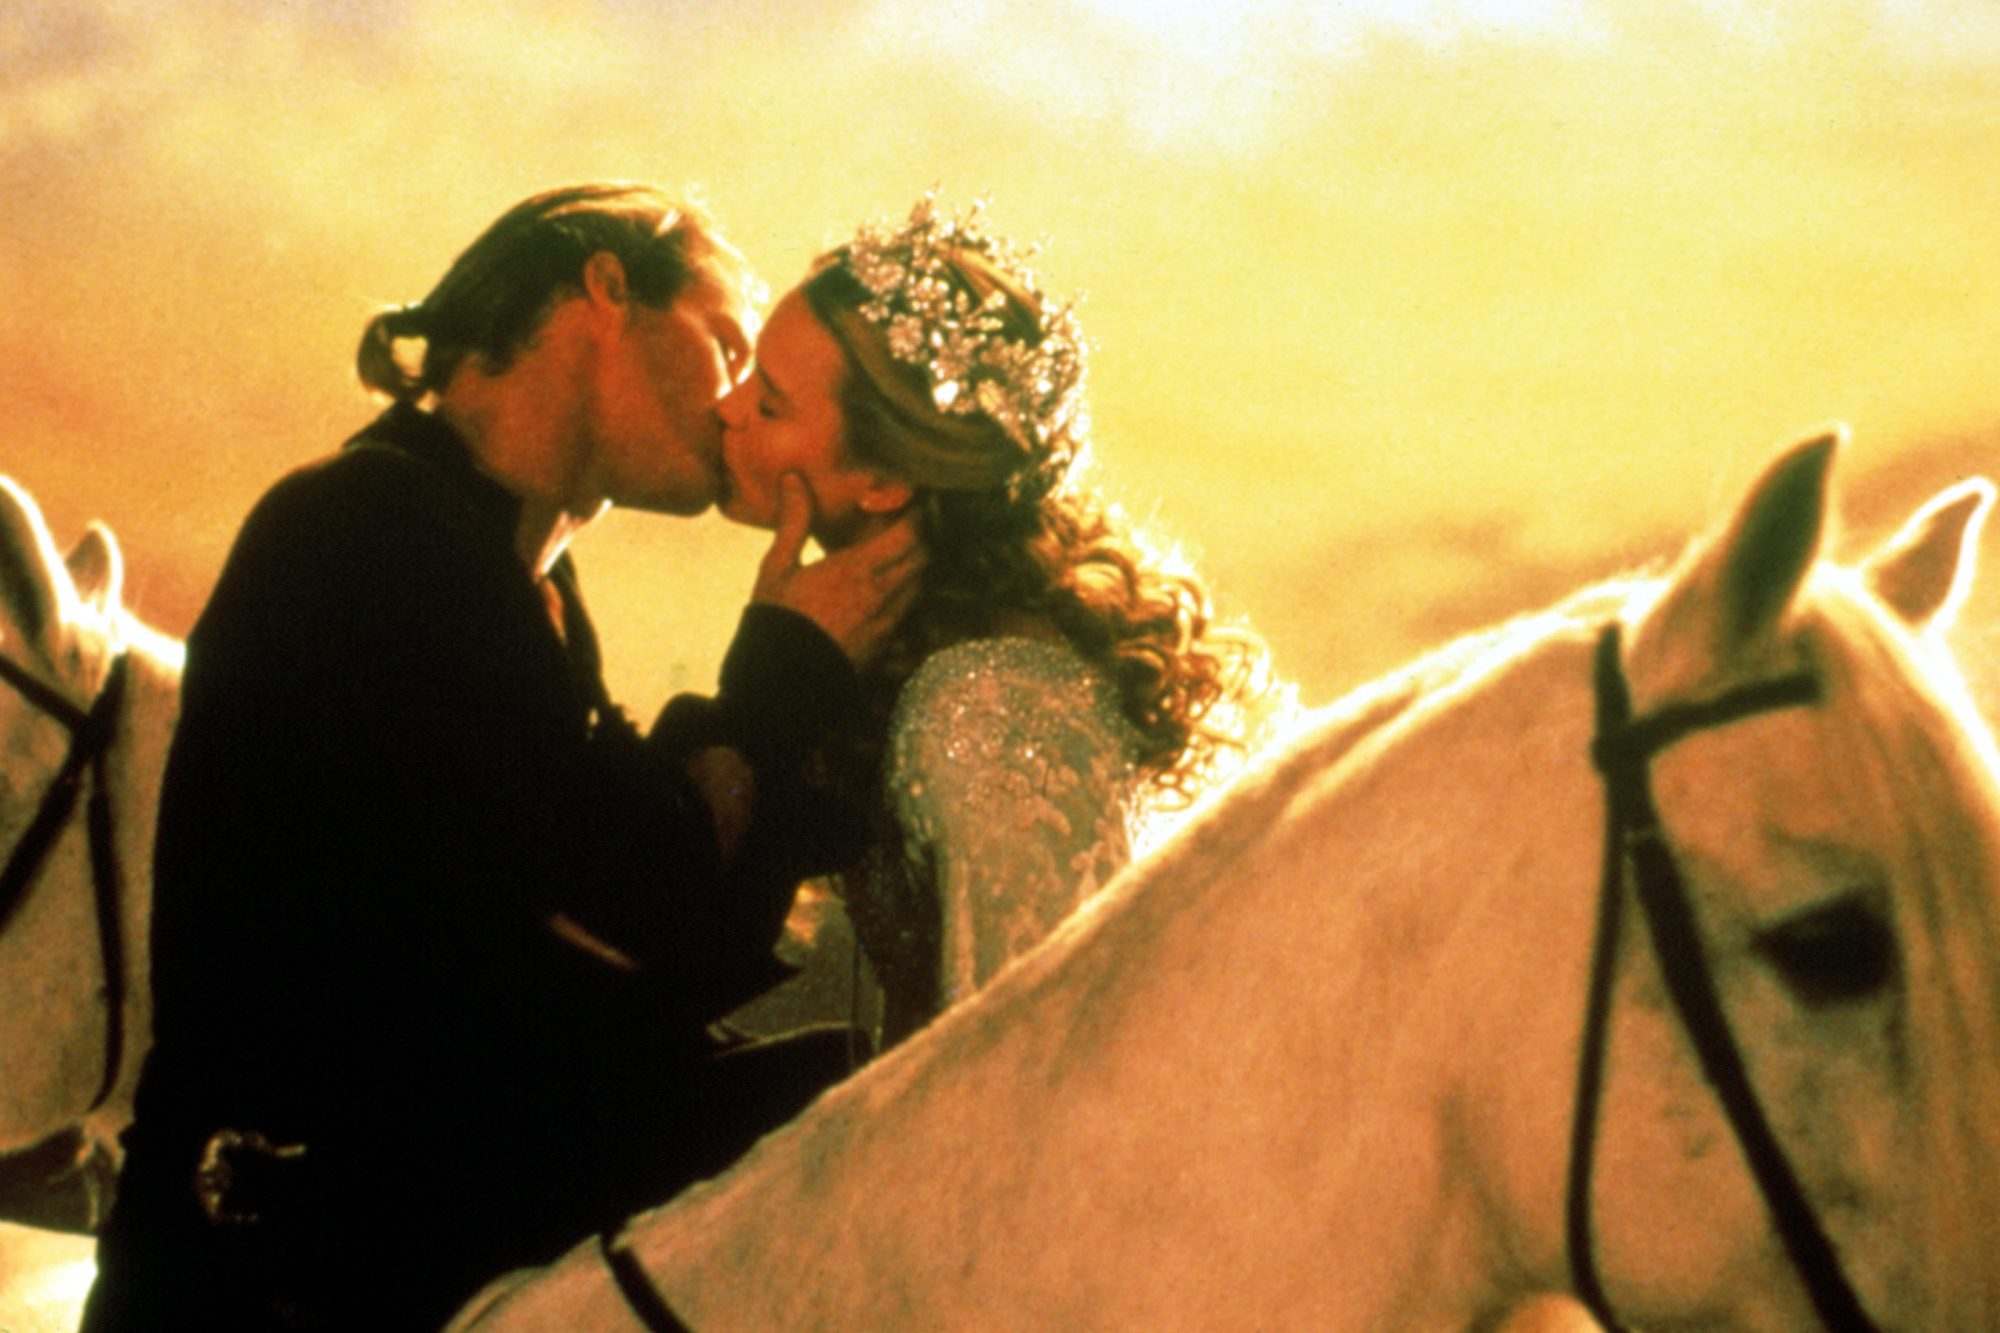 THE PRINCESS BRIDE, Cary Elwes, Robin Wright, 1987, TM & Copyright (c) 20th Century Fox Film Corp. A